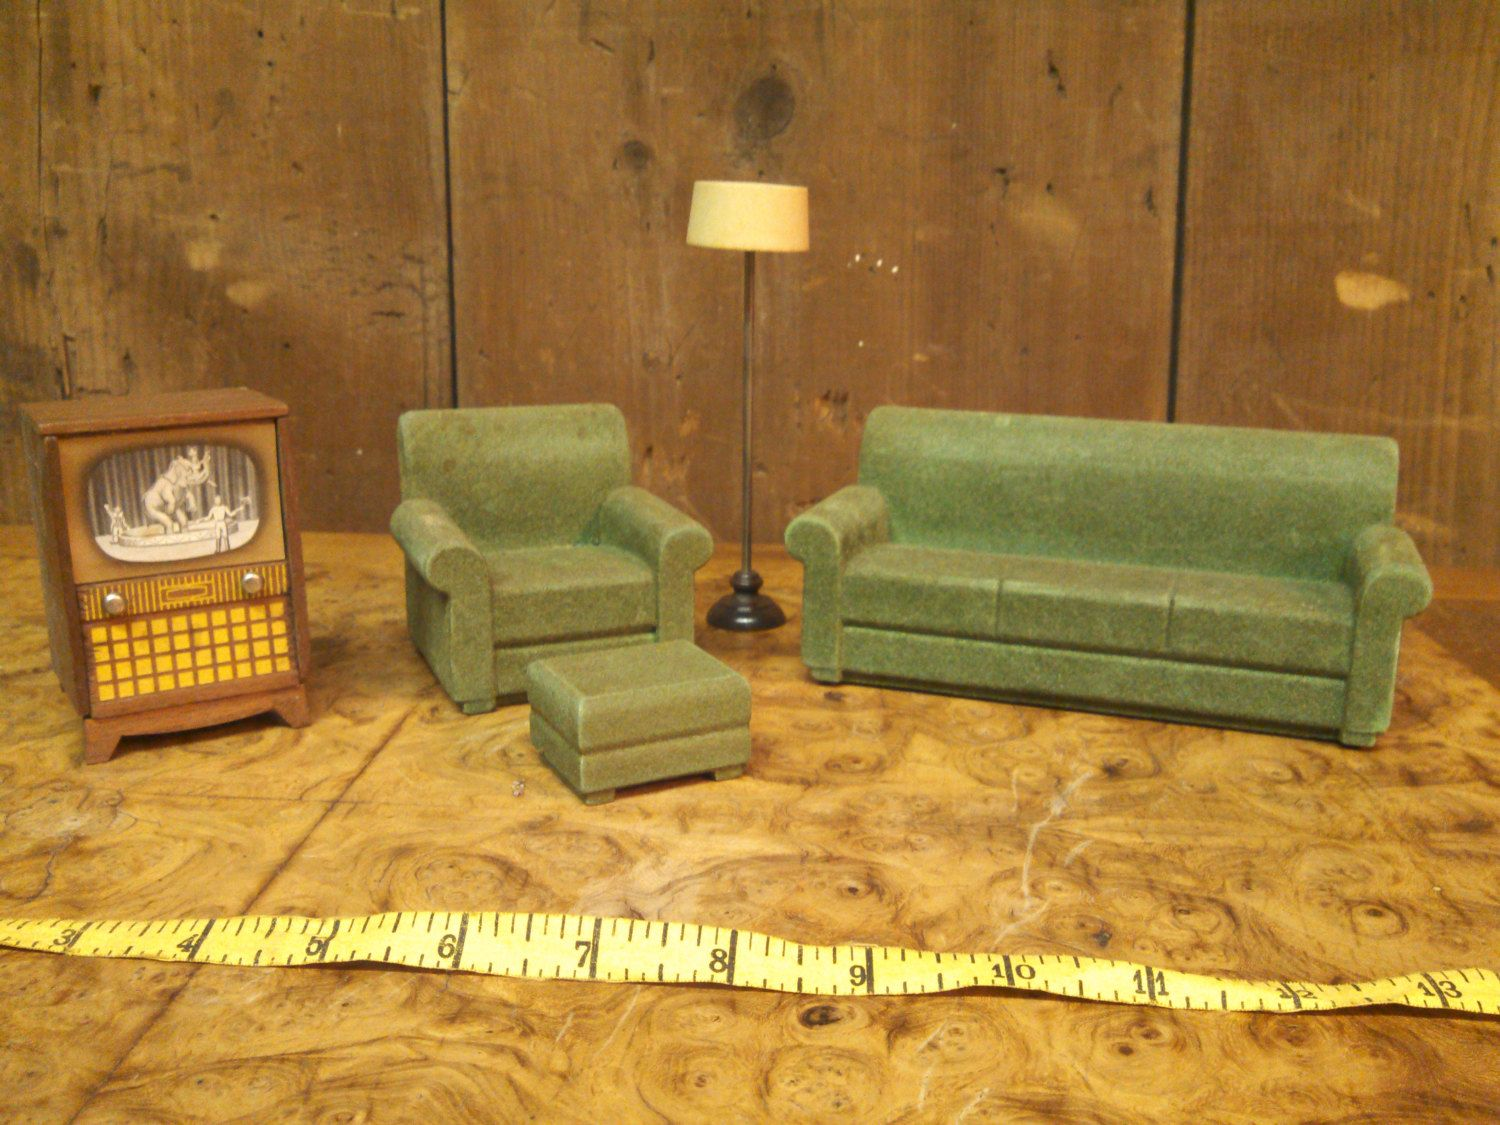 1953 Strombecker Living Room Set Vintage Dollhouse Furniture